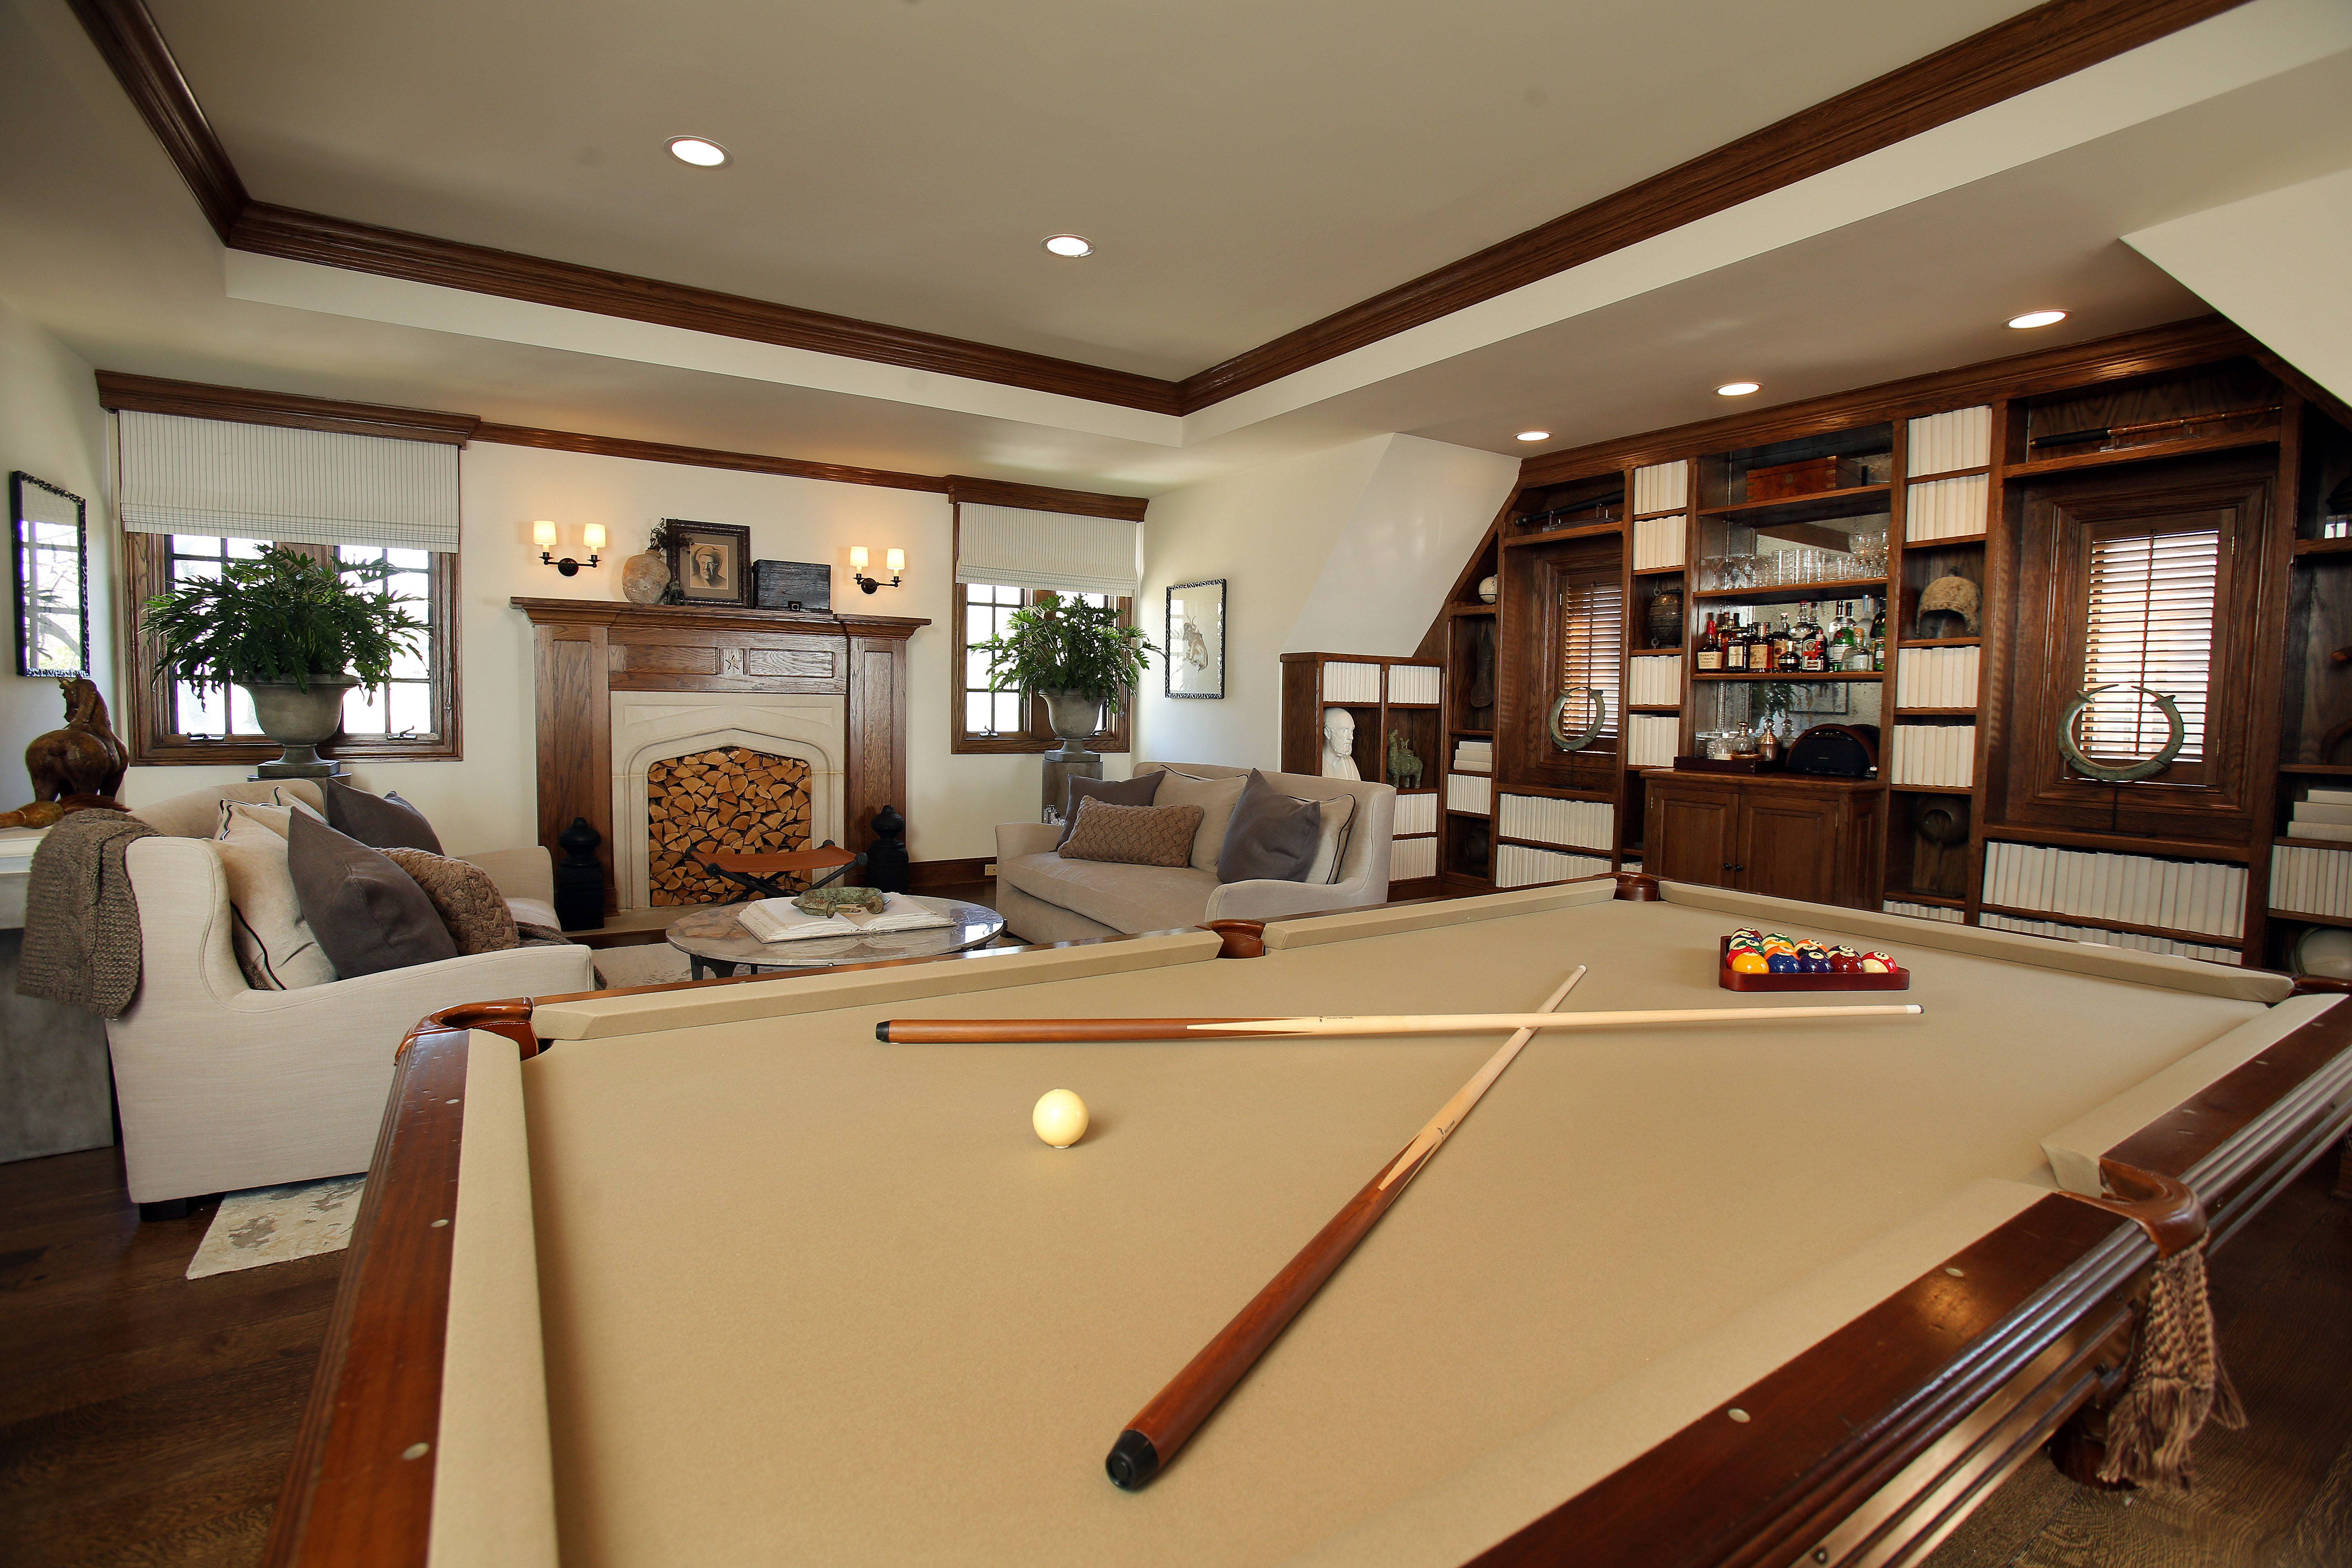 Mickel Welch rejected the idea of green felt on the pool table in his man cave.